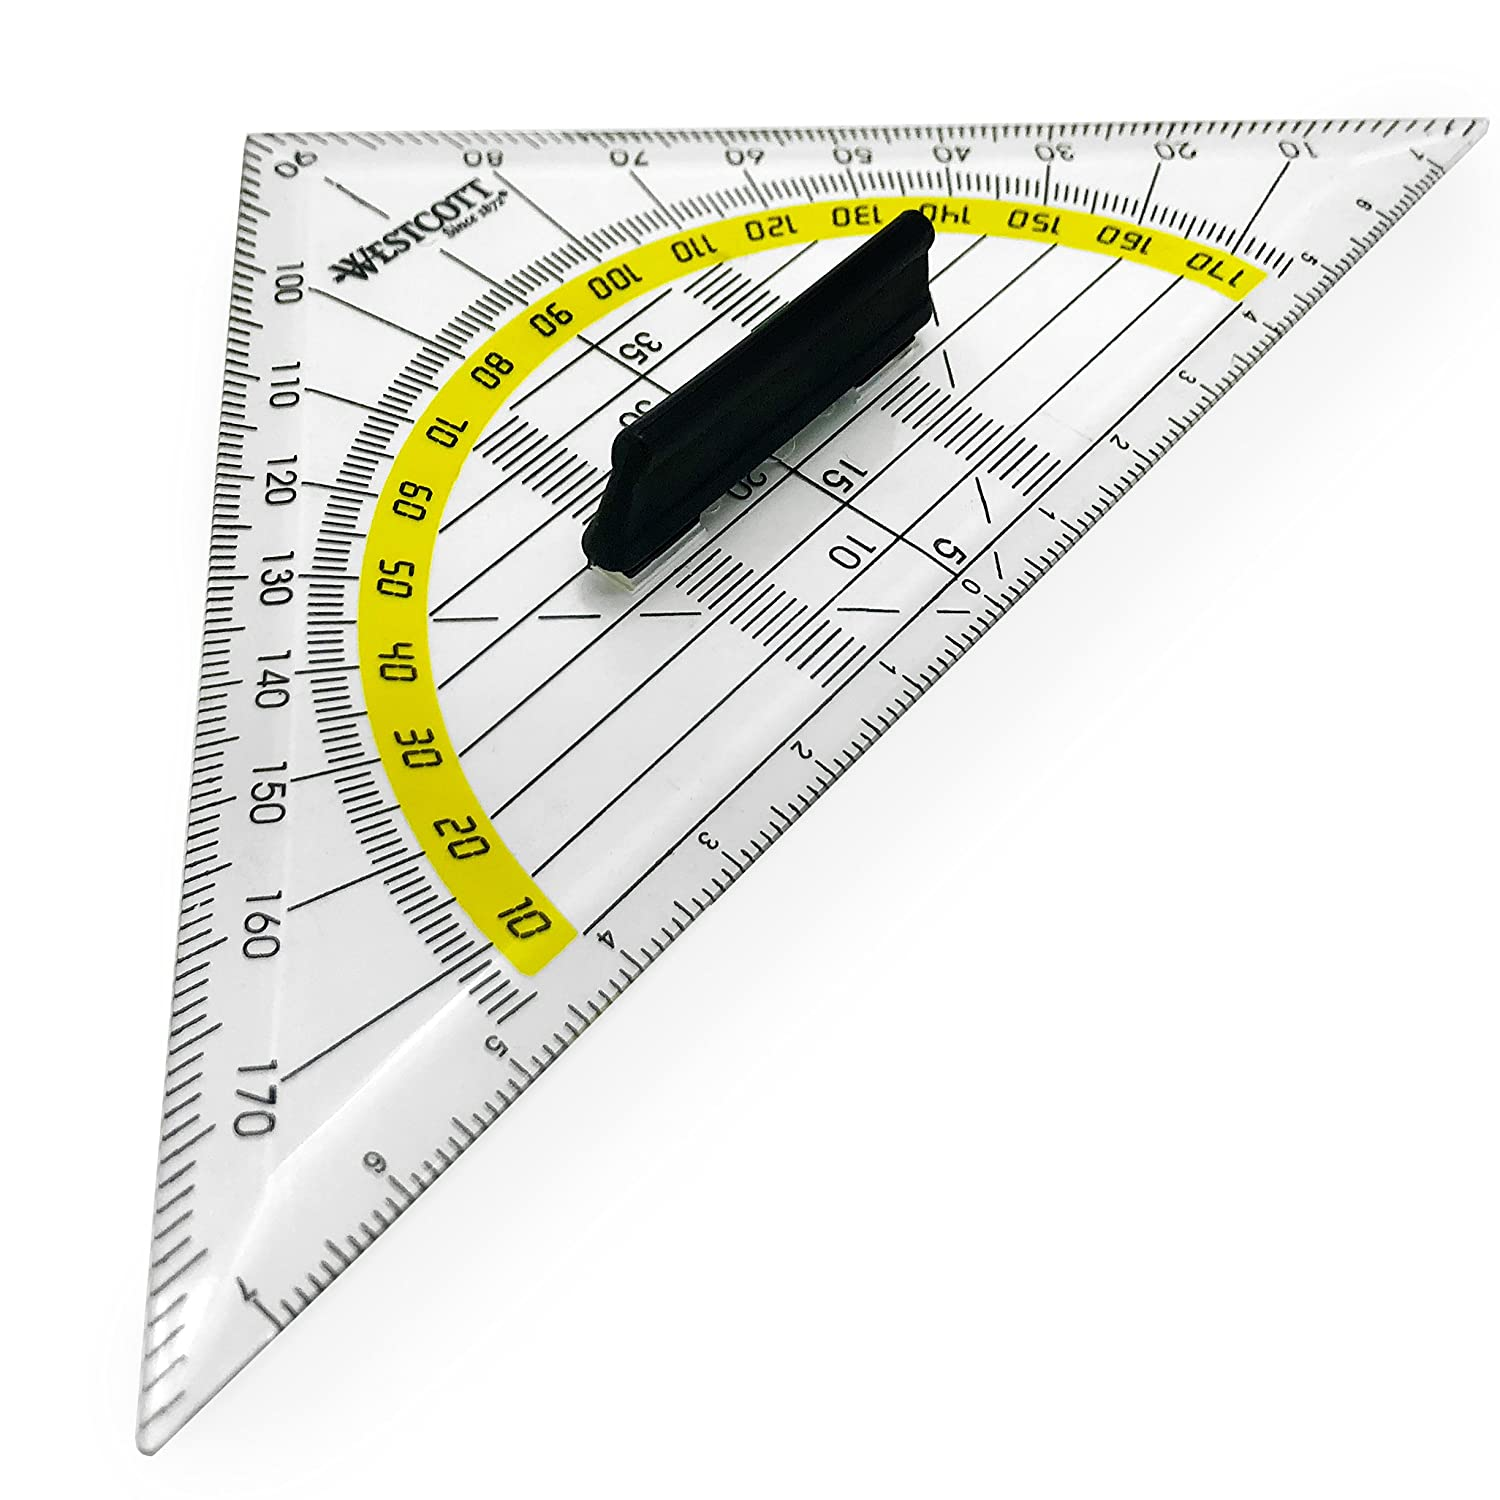 14cm E-10133 Two Way Scale with Detachable Handle Westcott Set Square Transparent with Yellow Accent